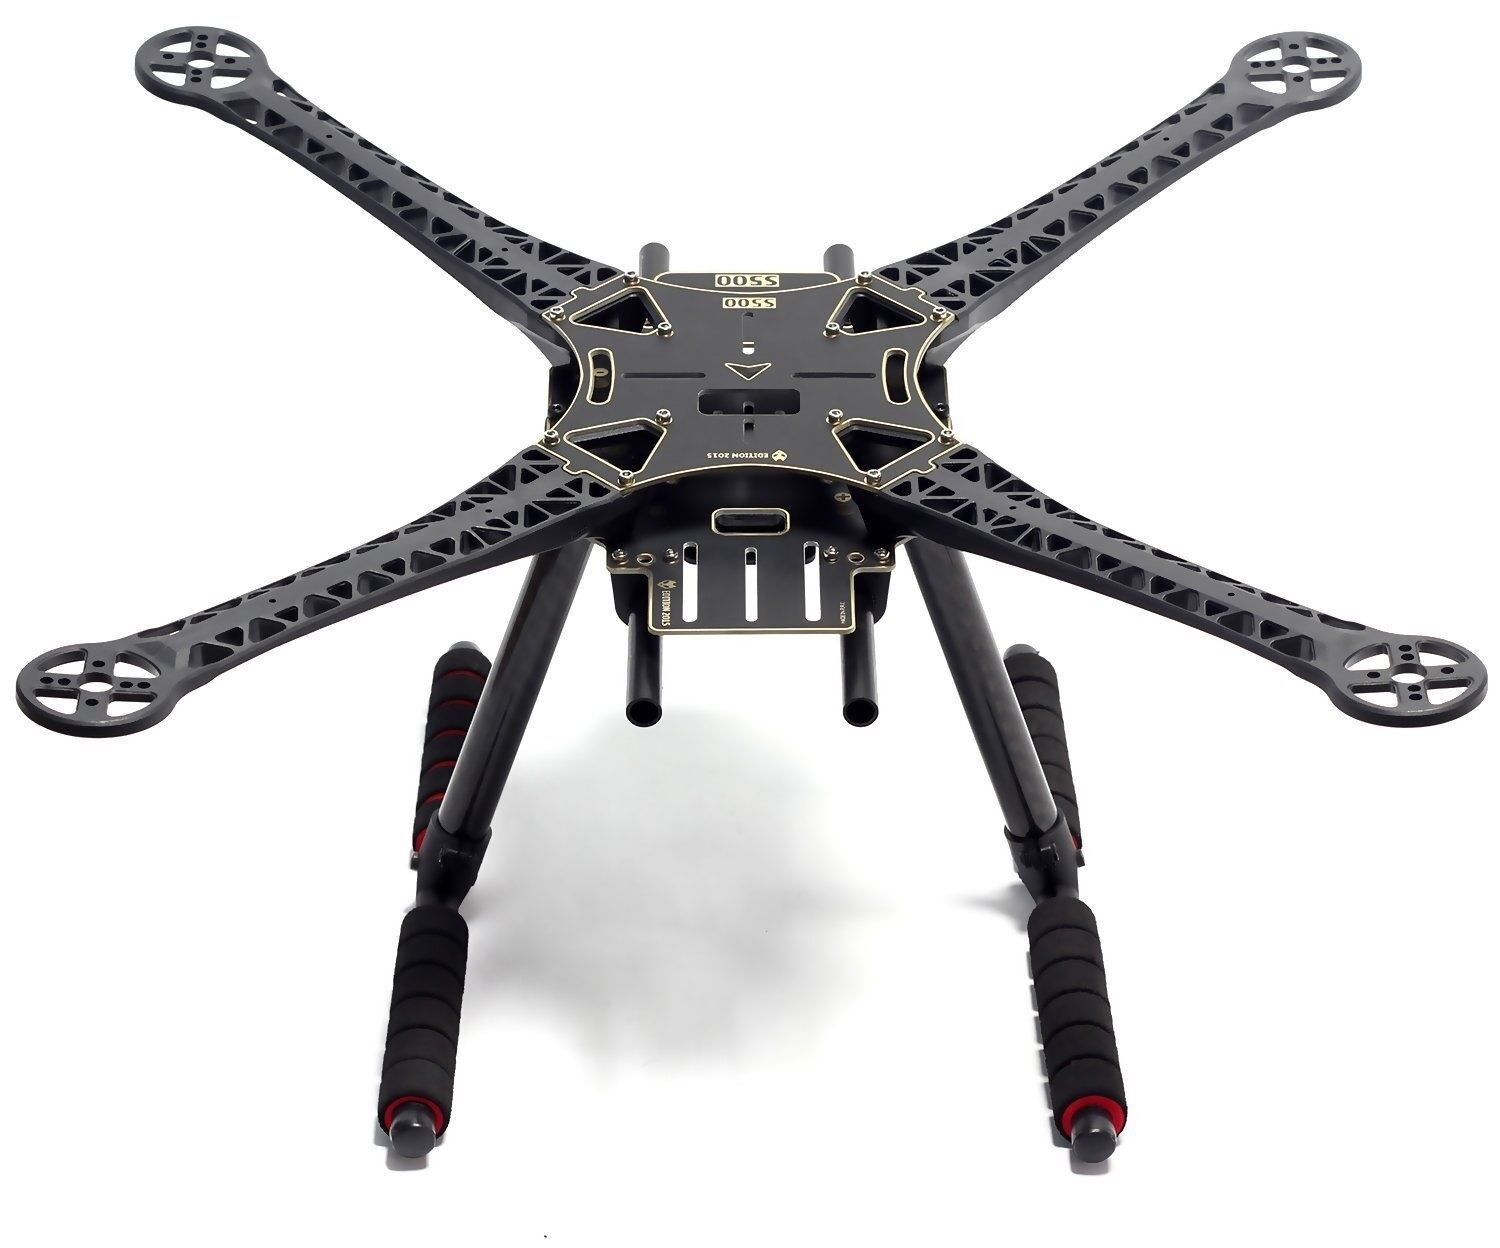 Quadcopter Drone Frame Stretch Kit Version with Carbon Fiber Landing Gear